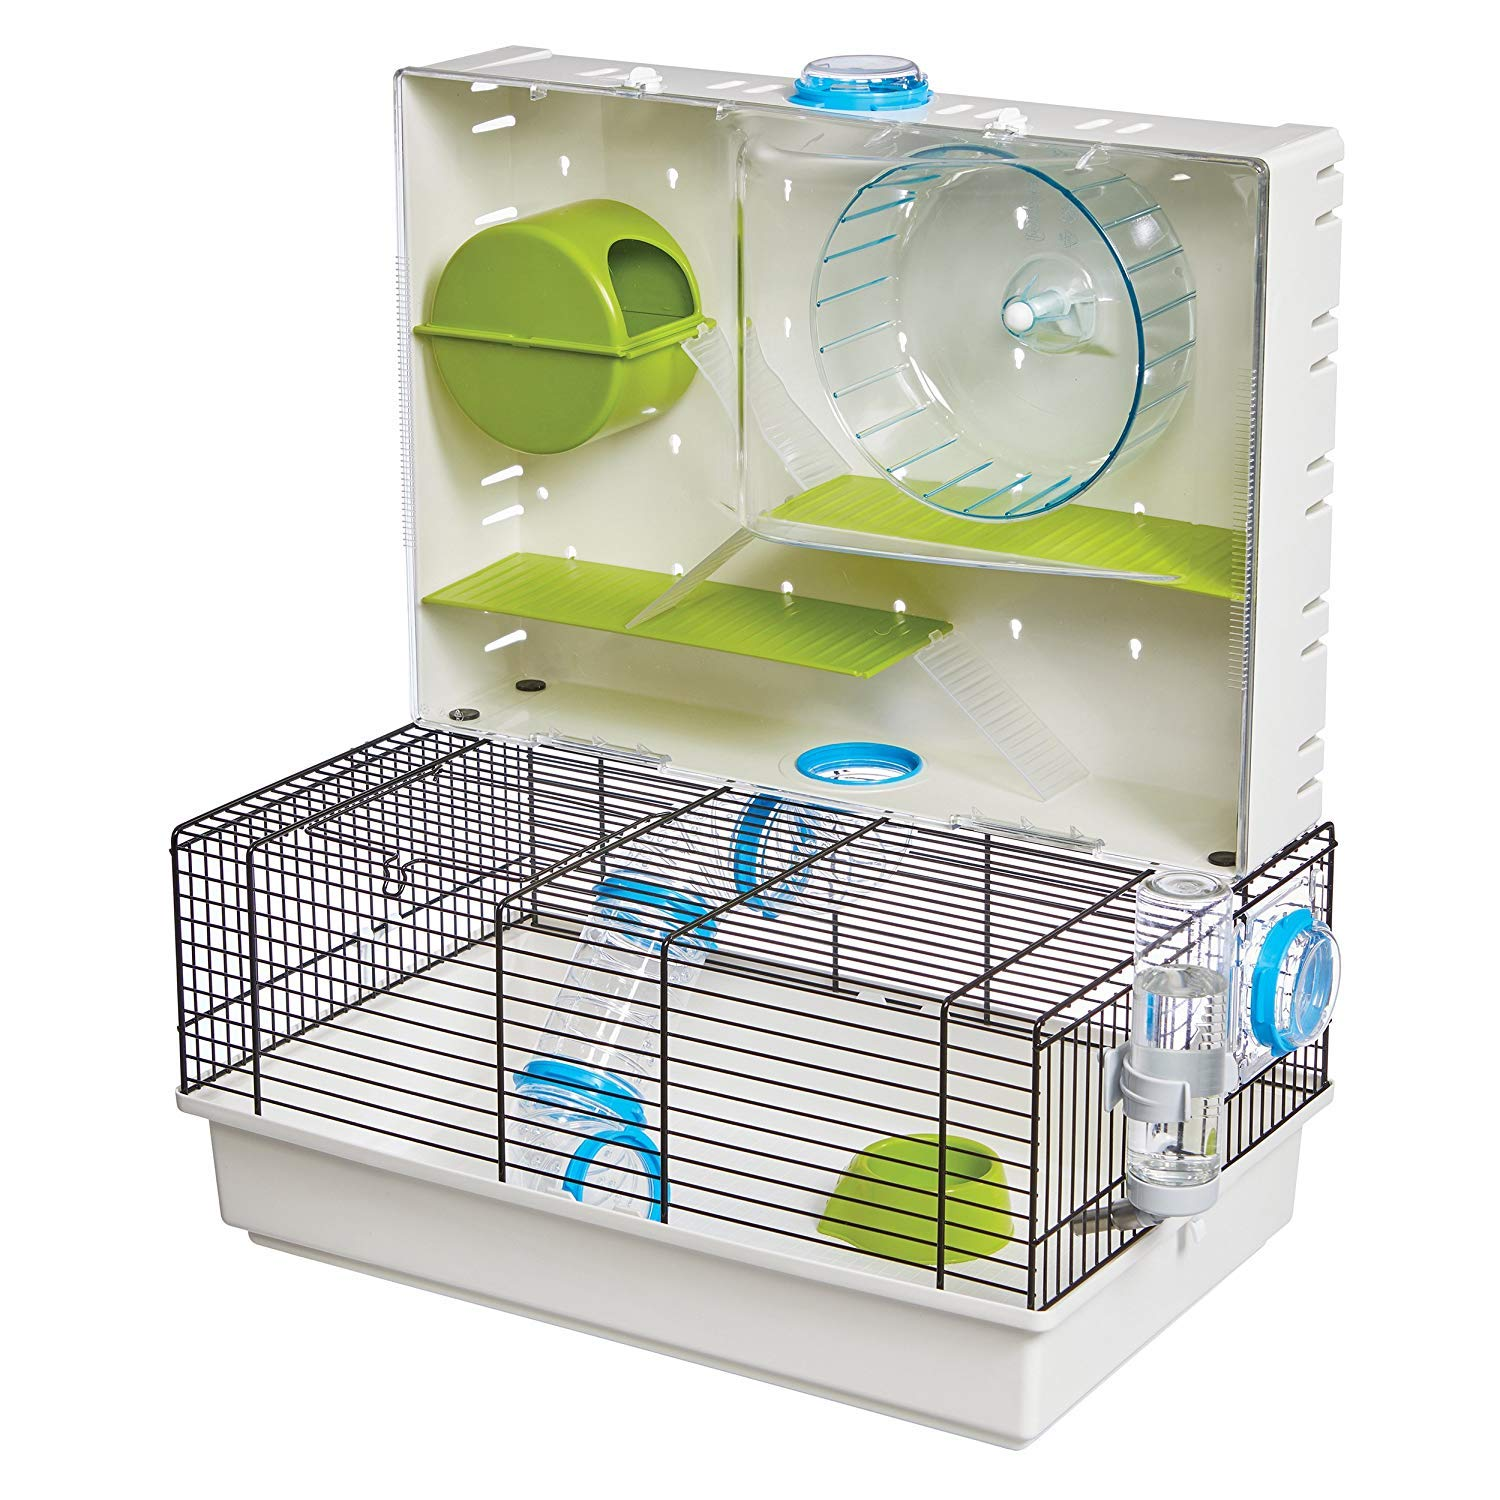 MidWest Homes for Pets Hamster Cage | Awesome Arcade Hamster Home | 18.11'' x 11.61'' x 21.26'' by MidWest Homes for Pets (Image #1)